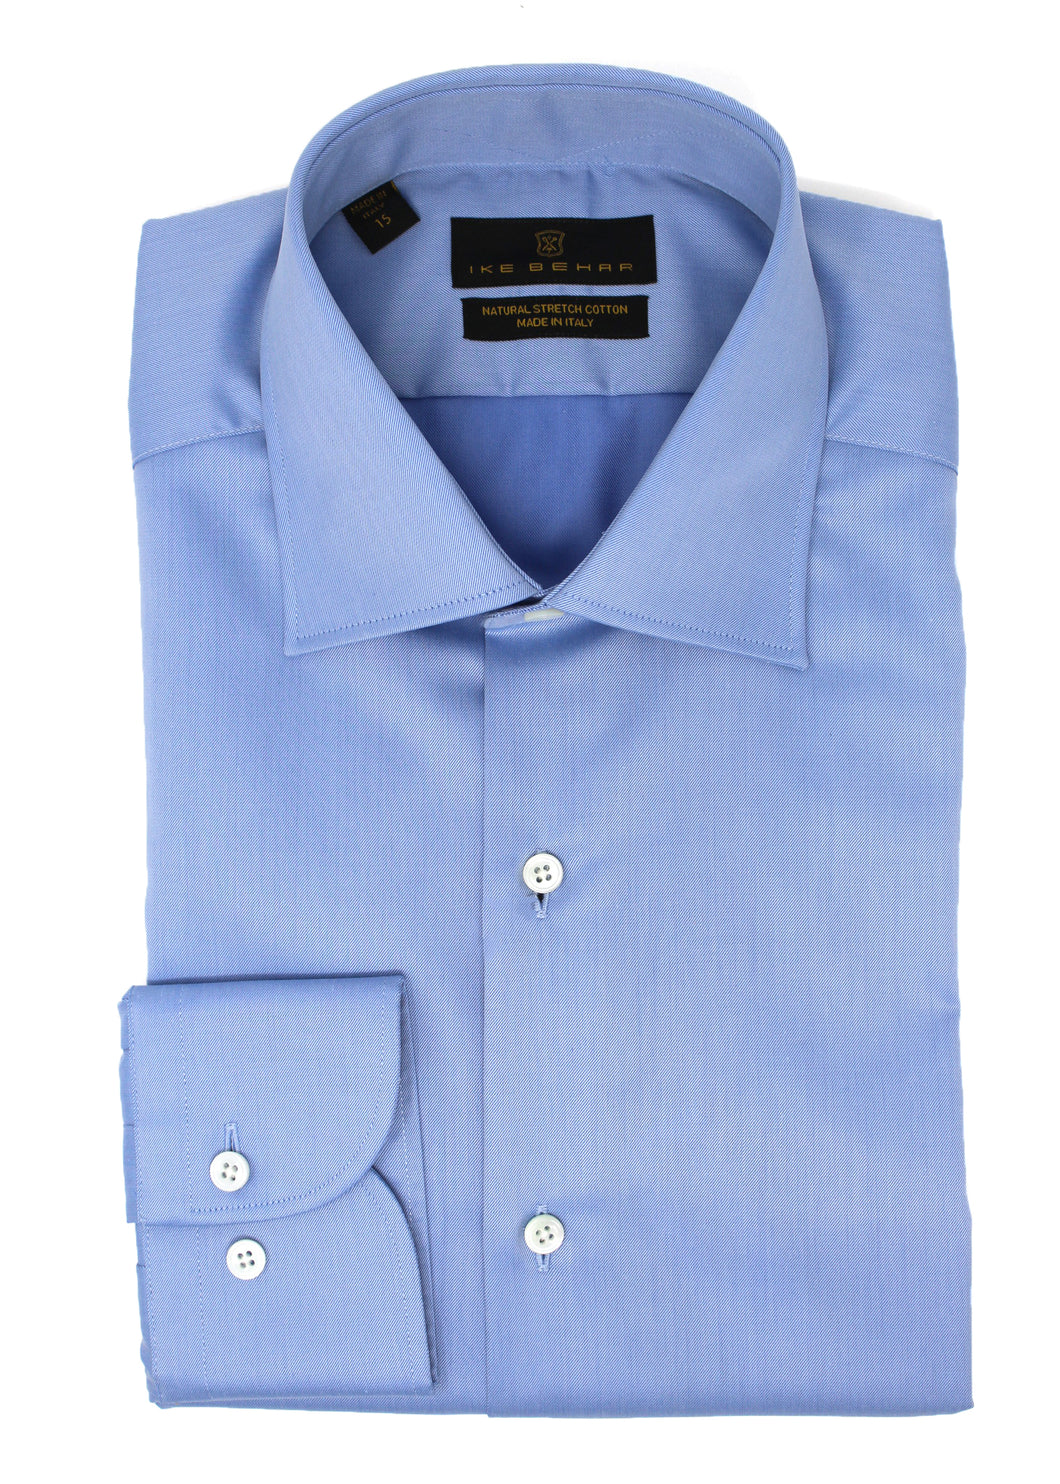 French Blue Twill Natural Stretch Cotton Dress Shirt